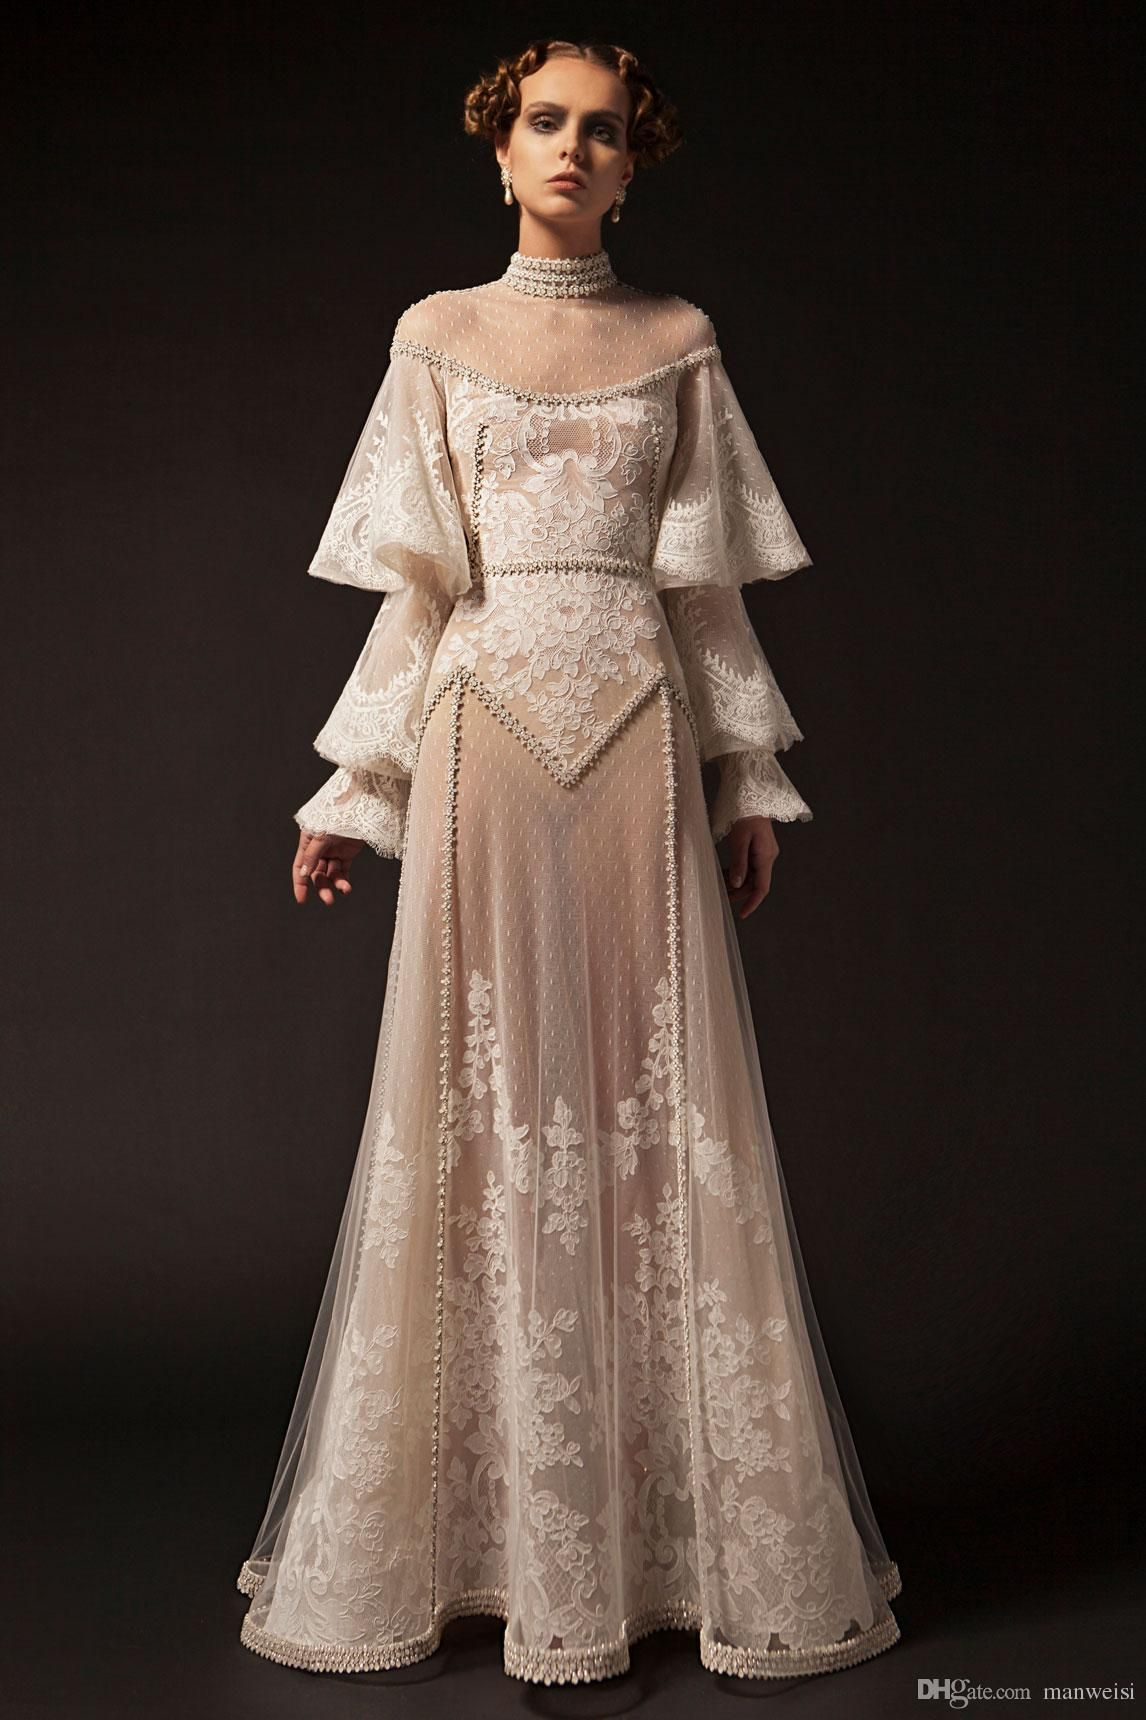 Krikor Jabotian 2019 New Prom Dresses High Neck Lace Applique Long Sleeve Beaded Formal Party Dress Vintage Pageant Evening Gowns 50s Prom Dress After Prom Dresses From Manweisi, $164.03| DHgate.Com #dress vintage Krikor Jabotian 2019 New Prom Dresses High Neck Lace Applique Long Sleeve Beaded Formal Party Dress Vintage Pageant Evening Gowns 50s Prom Dress After Prom Dresses From Manweisi, $164.03| DHgate.Com #bloggonh Krikor Jabotian 2019 New Prom Dresses High Neck Lace Applique Long Sleeve Bea #bloggonh